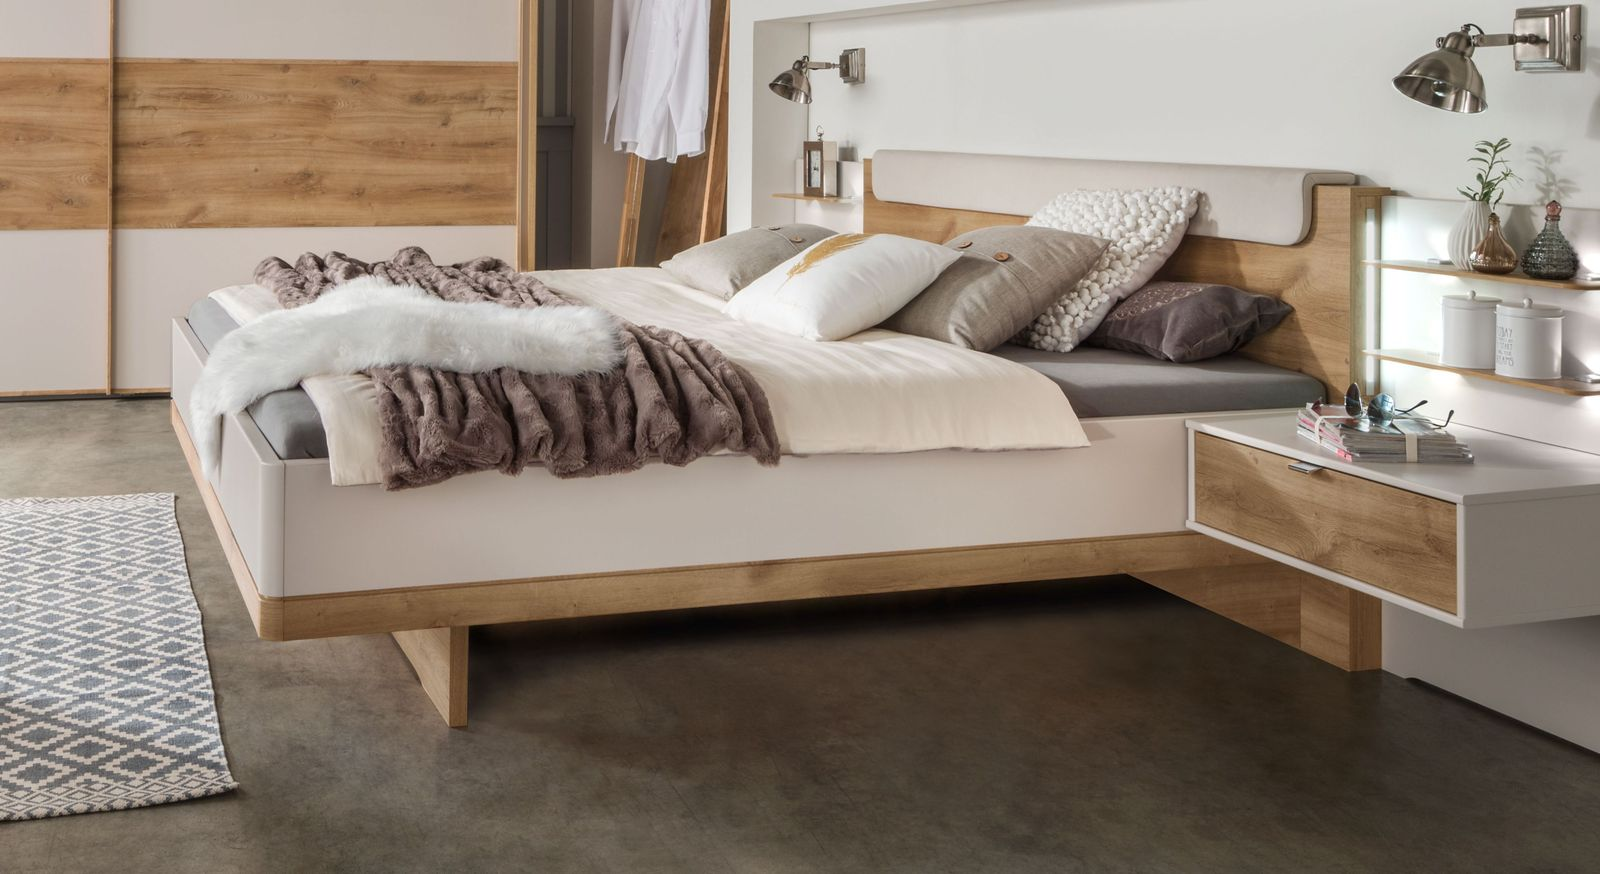 Bett Seabrook im stilvollem Design